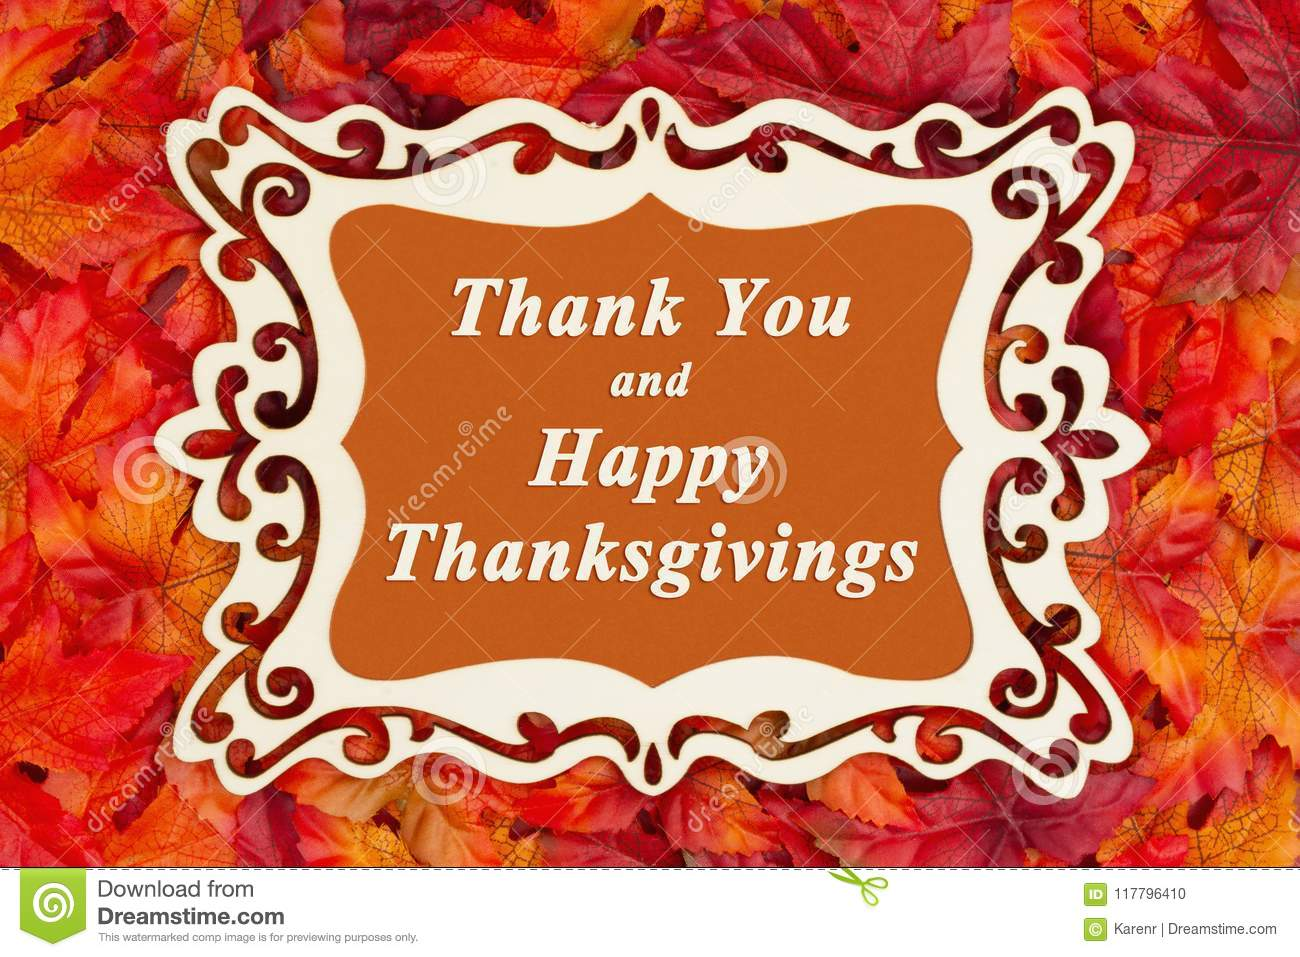 Happy thanksgiving greeting with fall leaves stock photo image of download happy thanksgiving greeting with fall leaves stock photo image of autumn type m4hsunfo